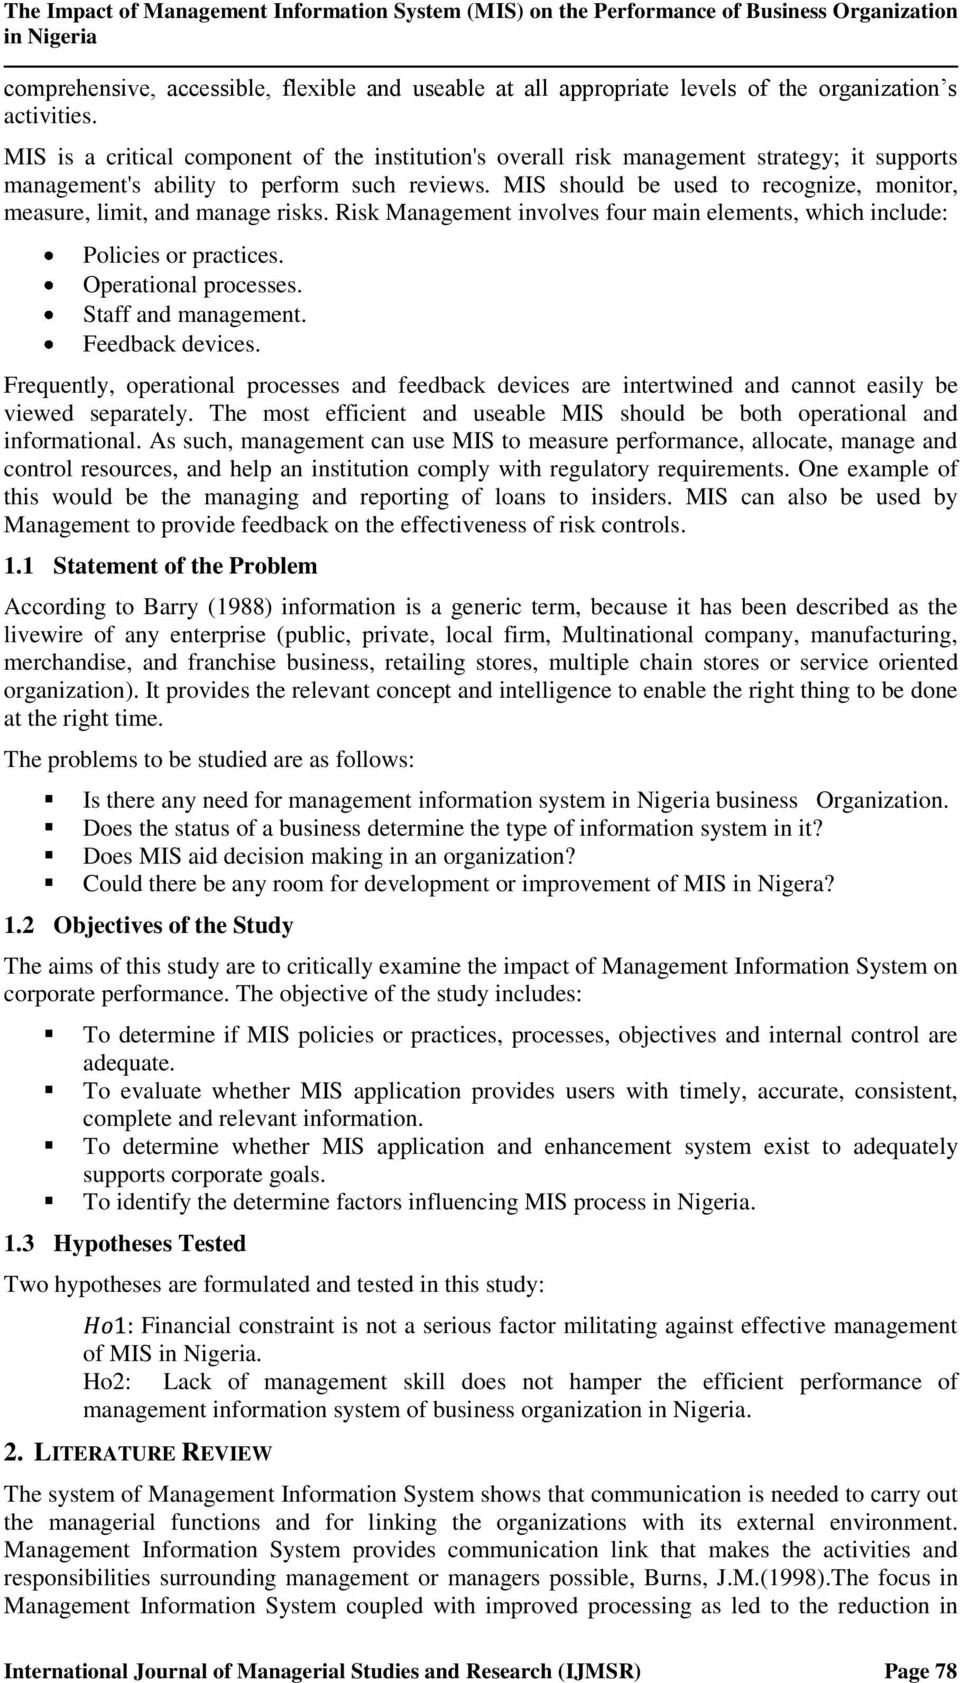 literature review on management information system